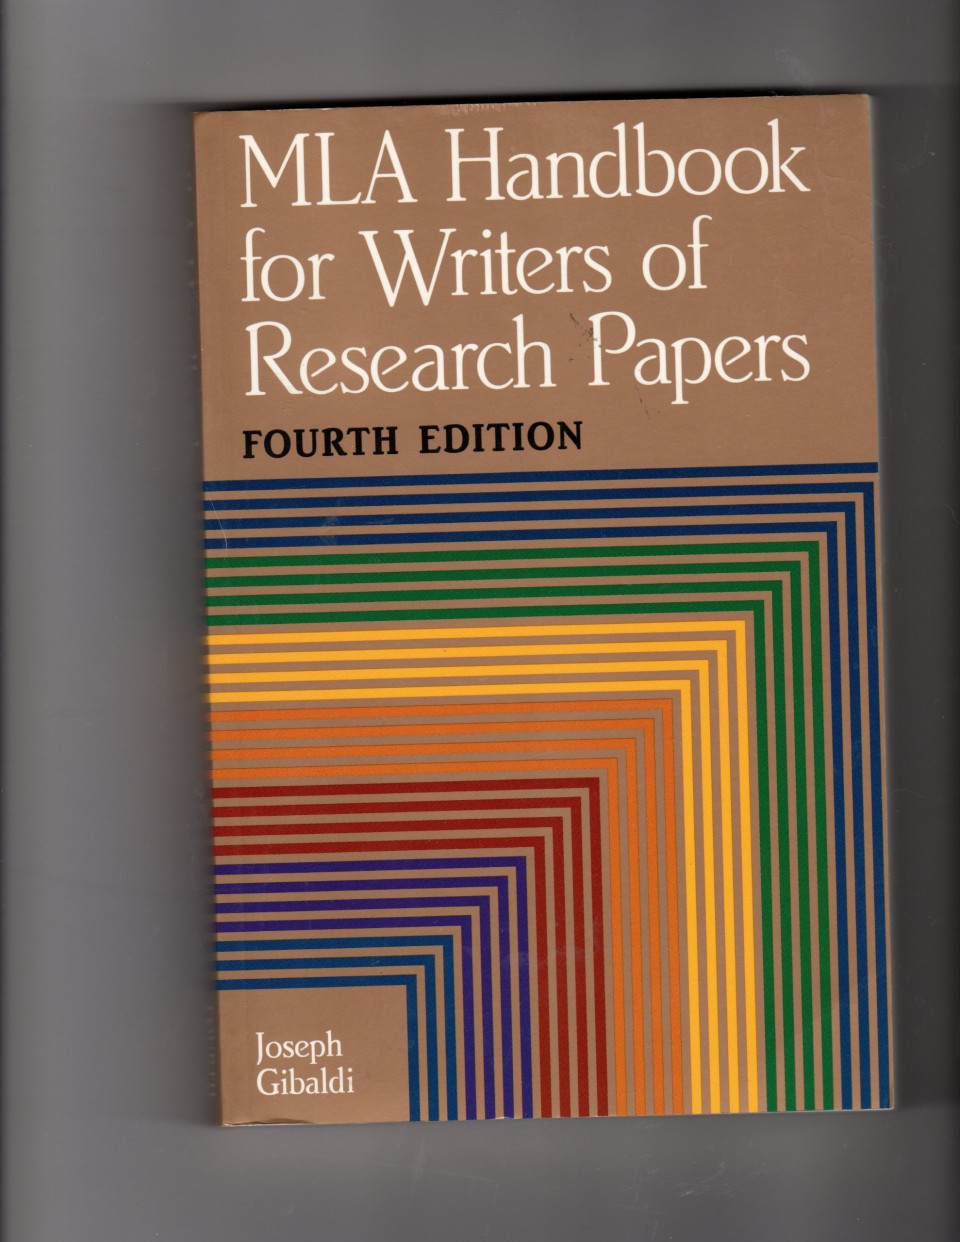 003 91or7esc2gl Research Paper The Mla Handbook For Writers Of Fearsome Papers 8th Edition 7th 2009 (8th Ed.) 960